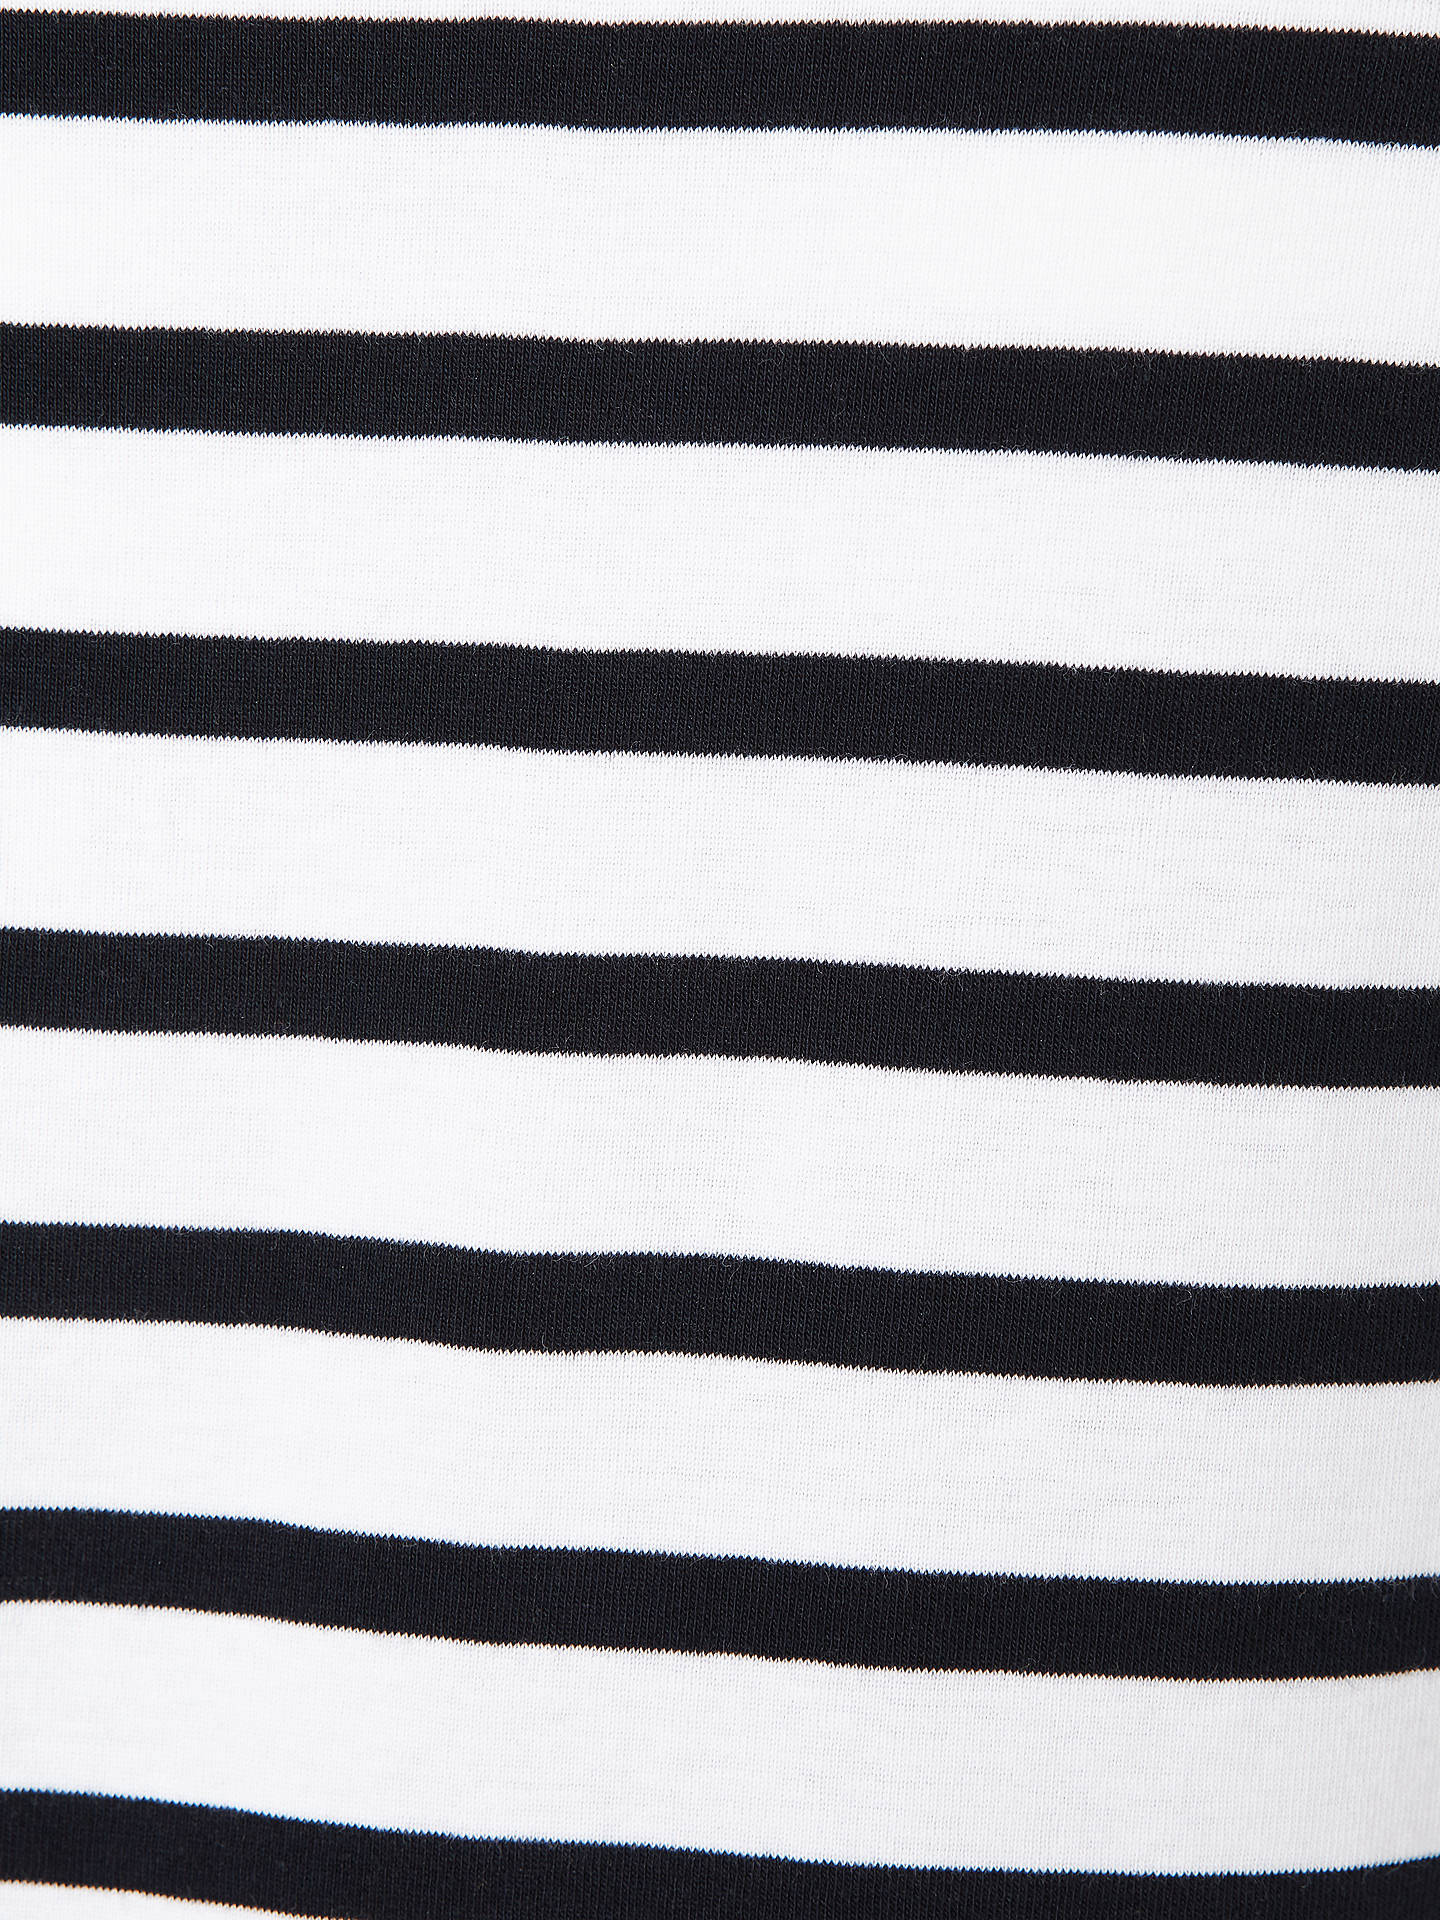 BuyJohn Lewis & Partners Half-Sleeve Breton Stripe Top, White/Navy, 10 Online at johnlewis.com